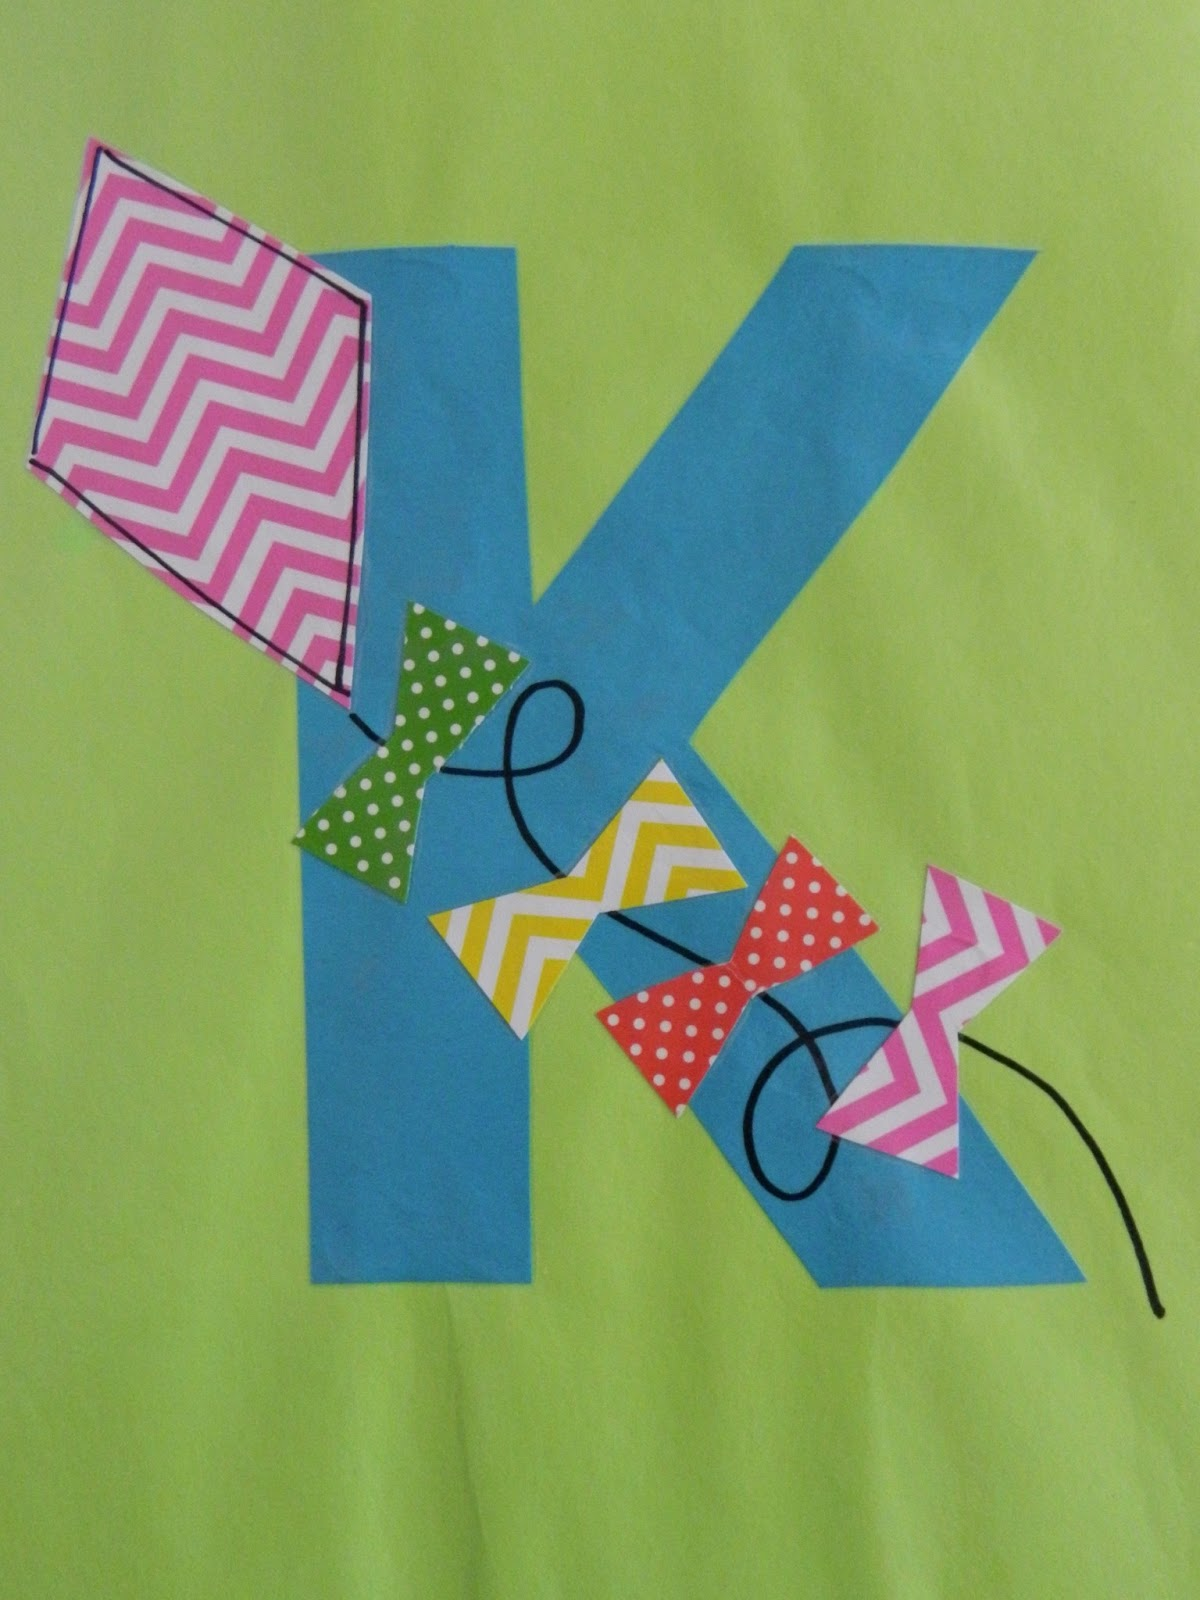 letter k crafts the vintage umbrella preschool alphabet projects 22893 | DSCN7830